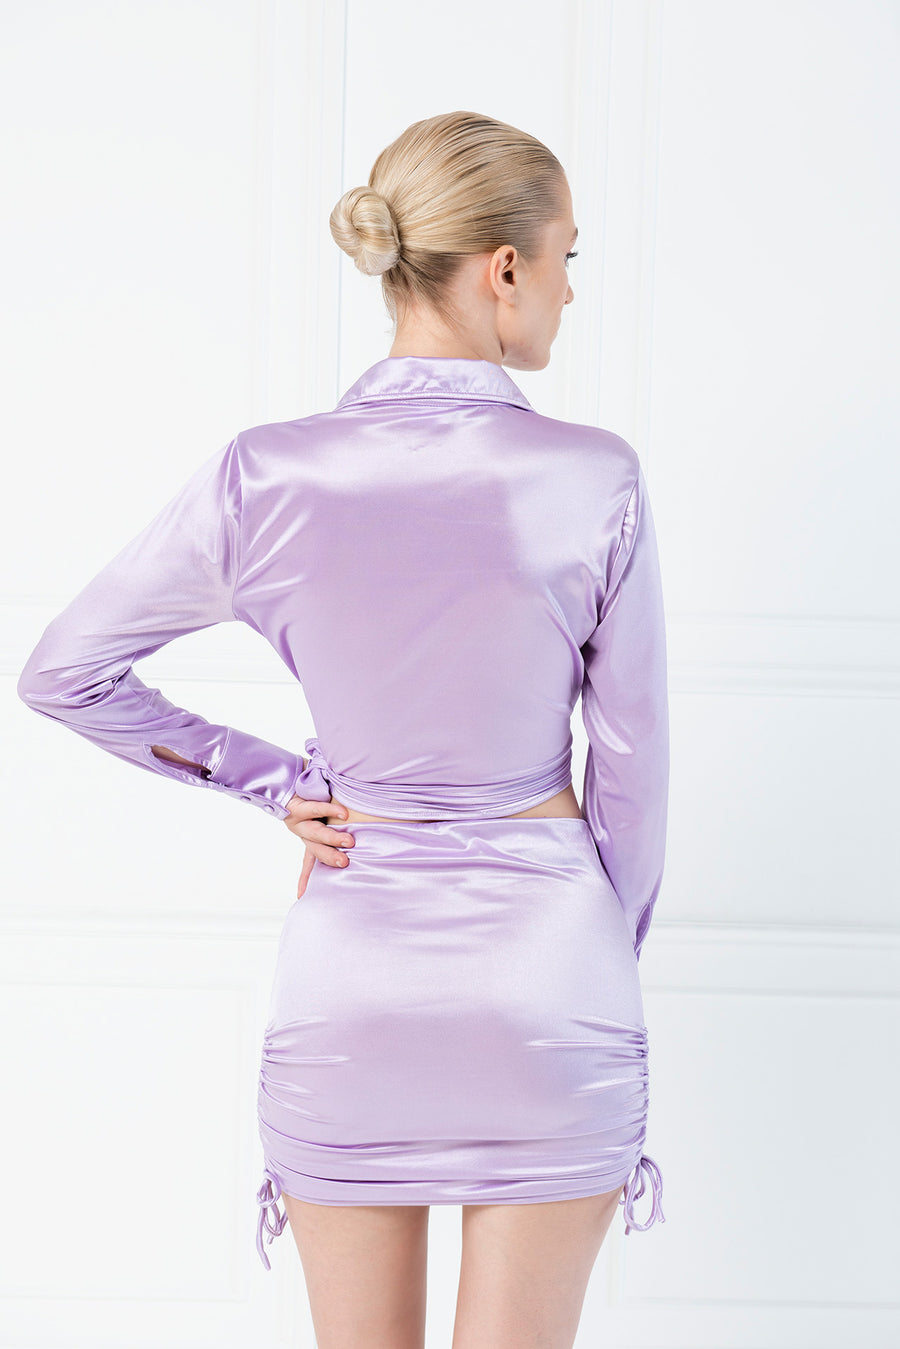 Disco Tie Front Satin Crop Top - Lilac